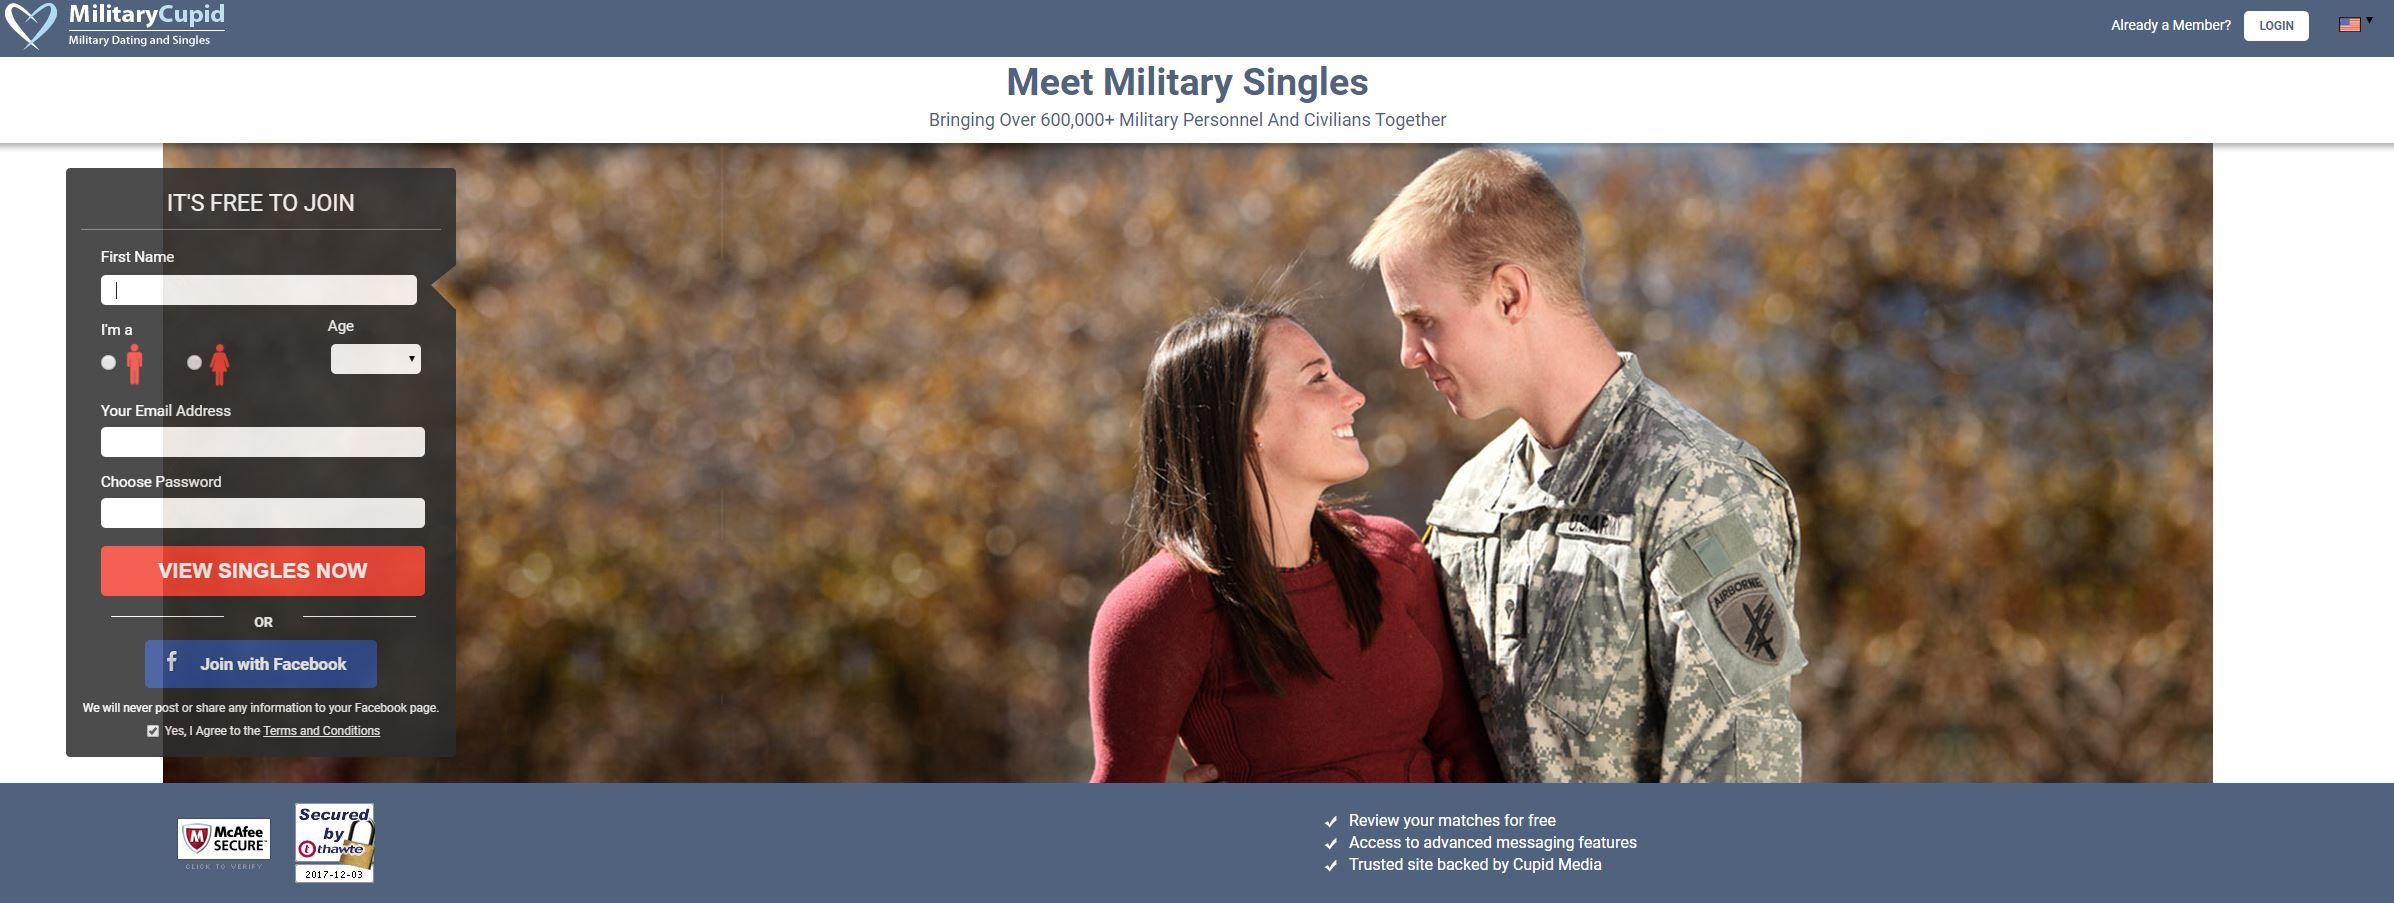 dating-site-for-military-famous-sex-scenes-from-movies